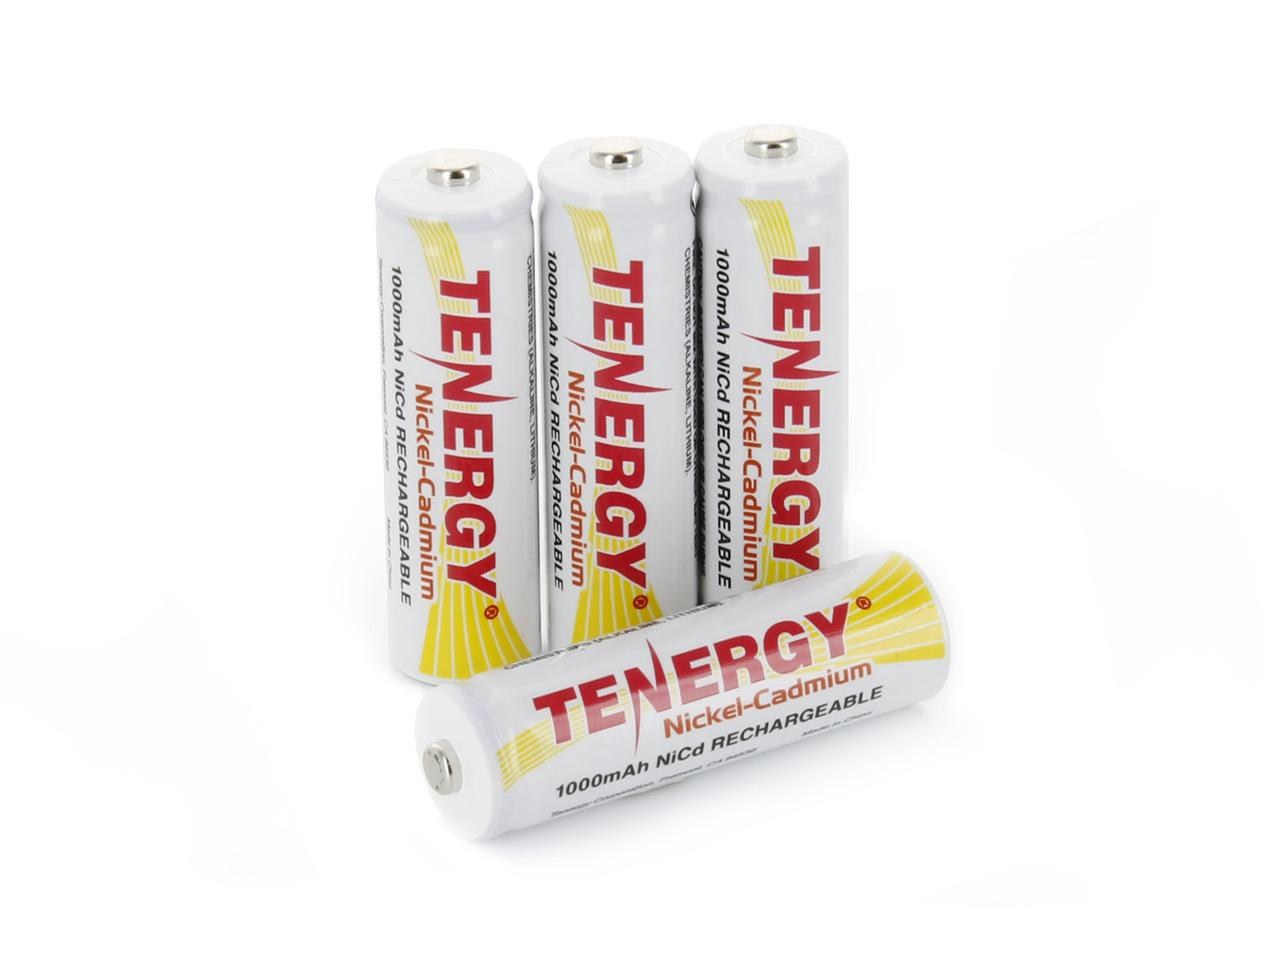 Tenergy AA Rechargeable Battery NiCd 1000mAh 1.2V Battery Pack for Solar Lights, Garden Lights, Remotes, Mice, 12-Pack by Tenergy